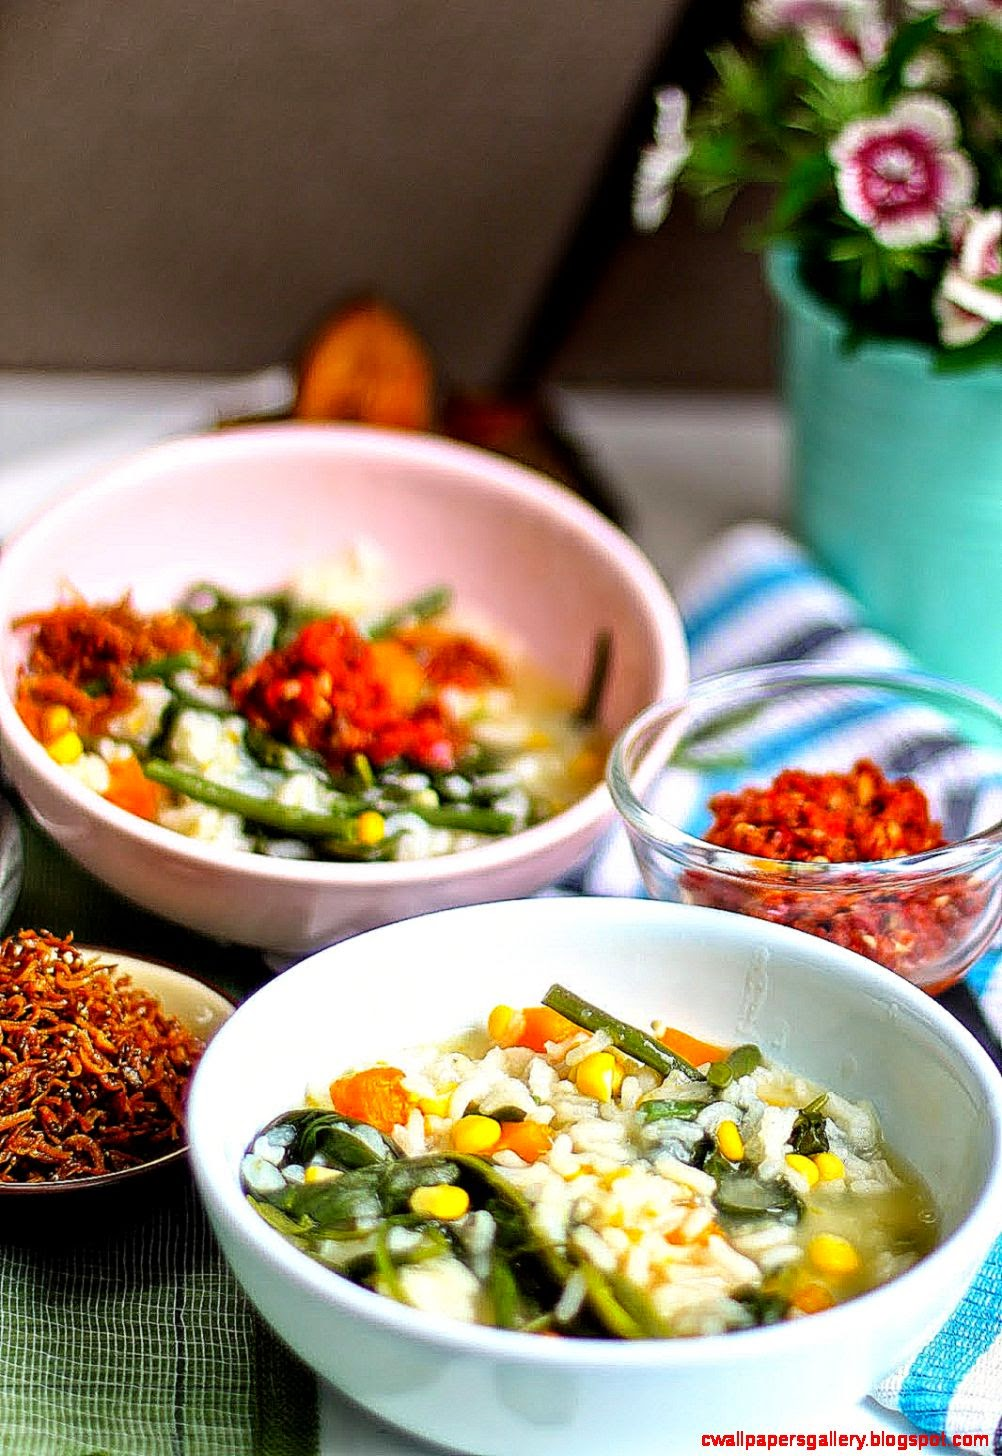 Olivia Cooks in Holland BUBUR MANADO  MANADONESE VEGETABLE PORRIDGE